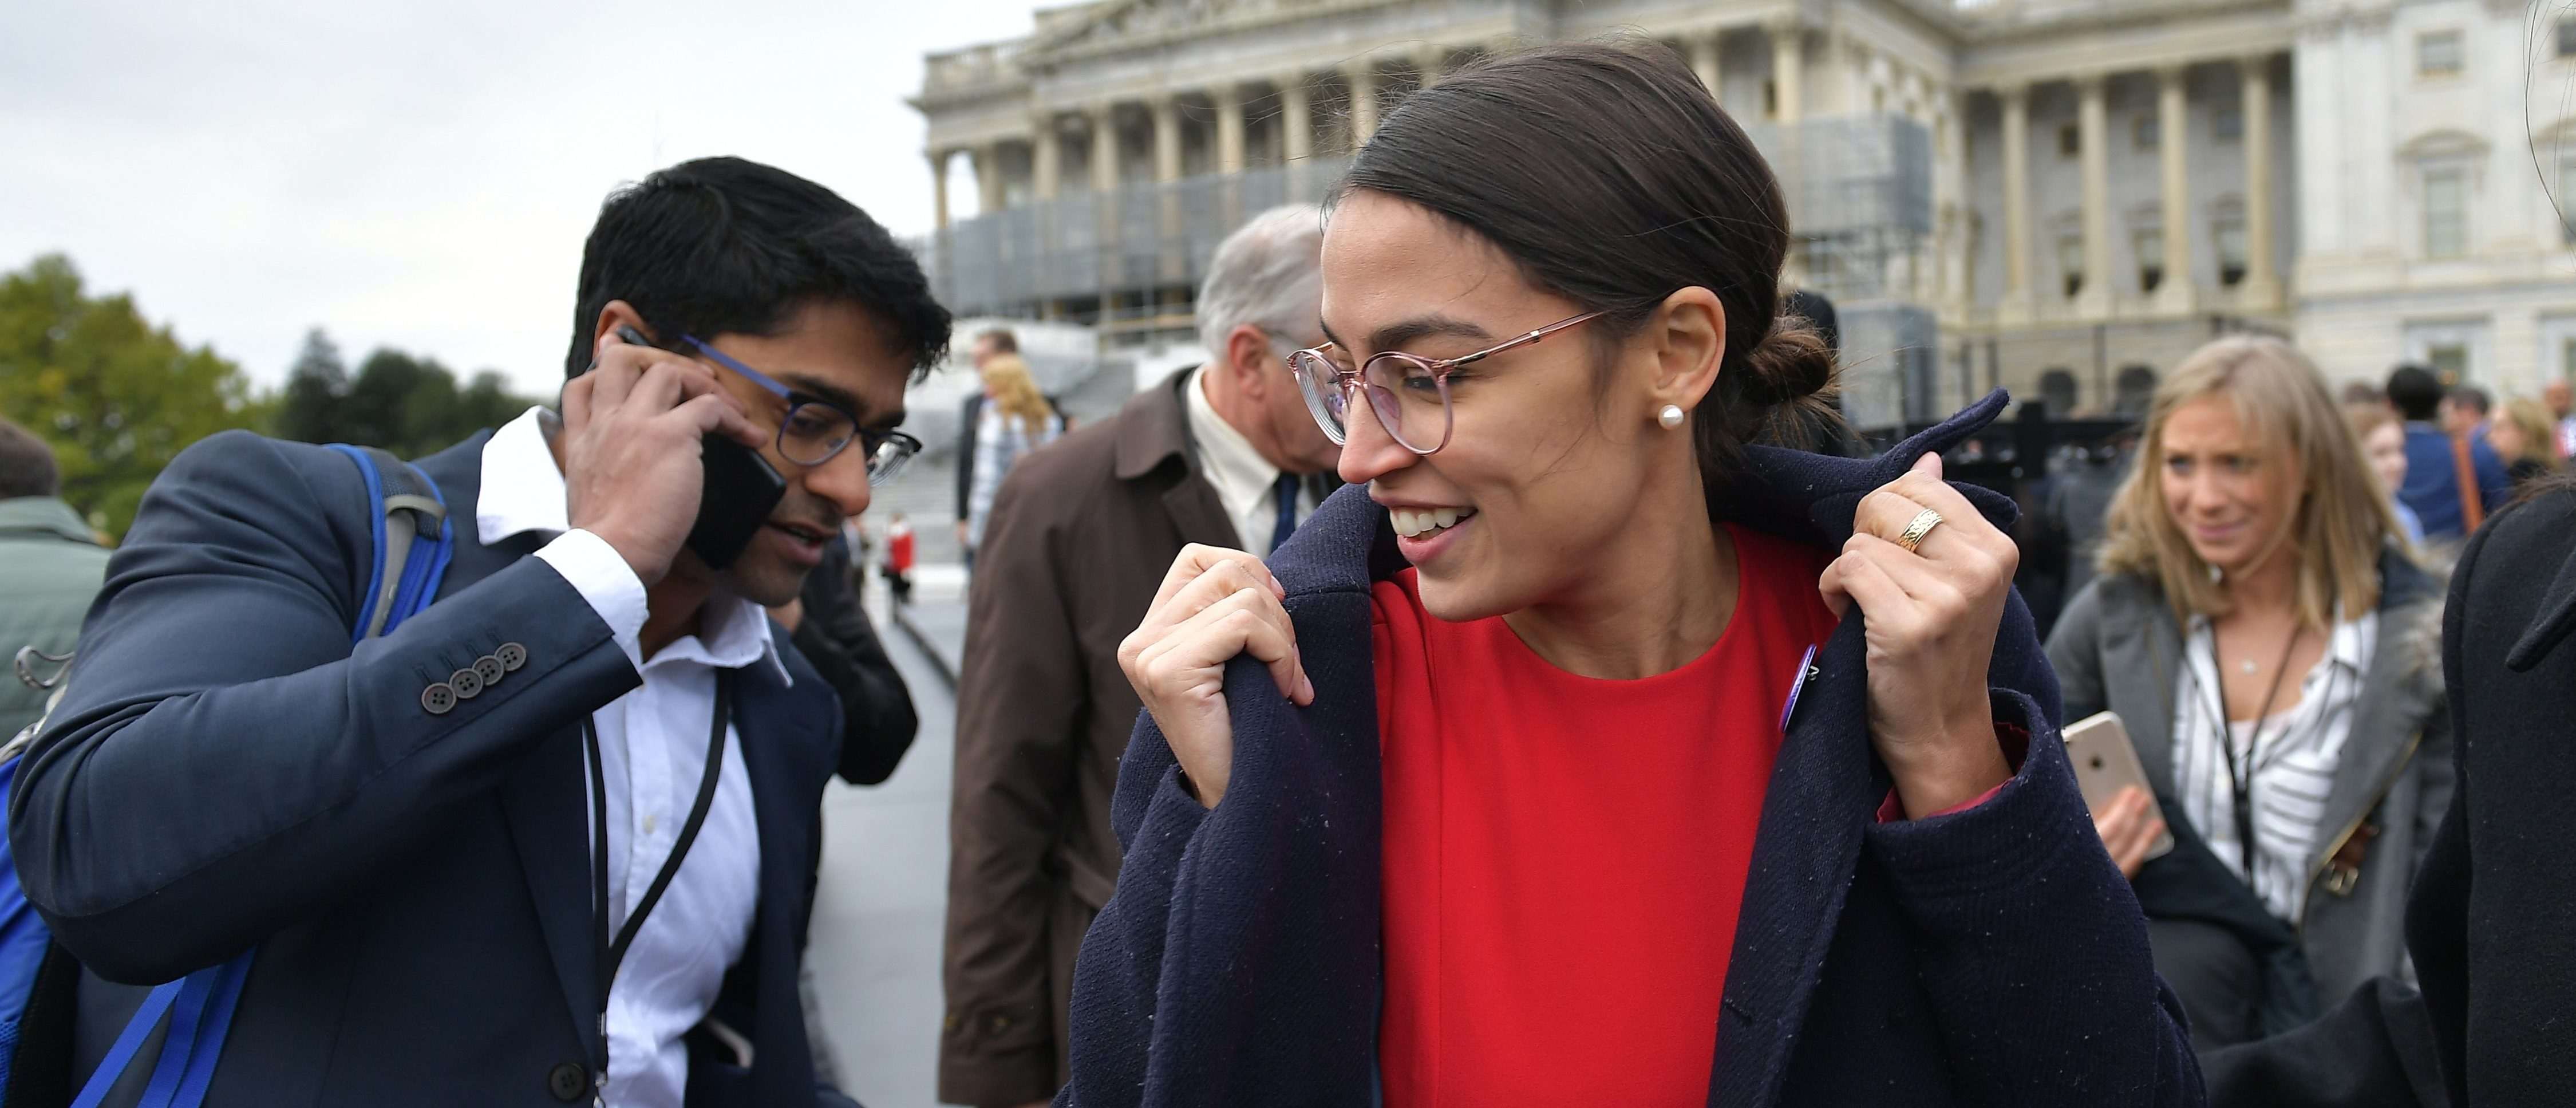 Democratic congresswoman-elect Alexandria Ocasio-Cortez puts on her coat after posing for the 116th Congress members-elect group photo on the East Front Plaza of the US Capitol in Washington, DC on November 14, 2018. (Photo credit: MANDEL NGAN/AFP/Getty Images)